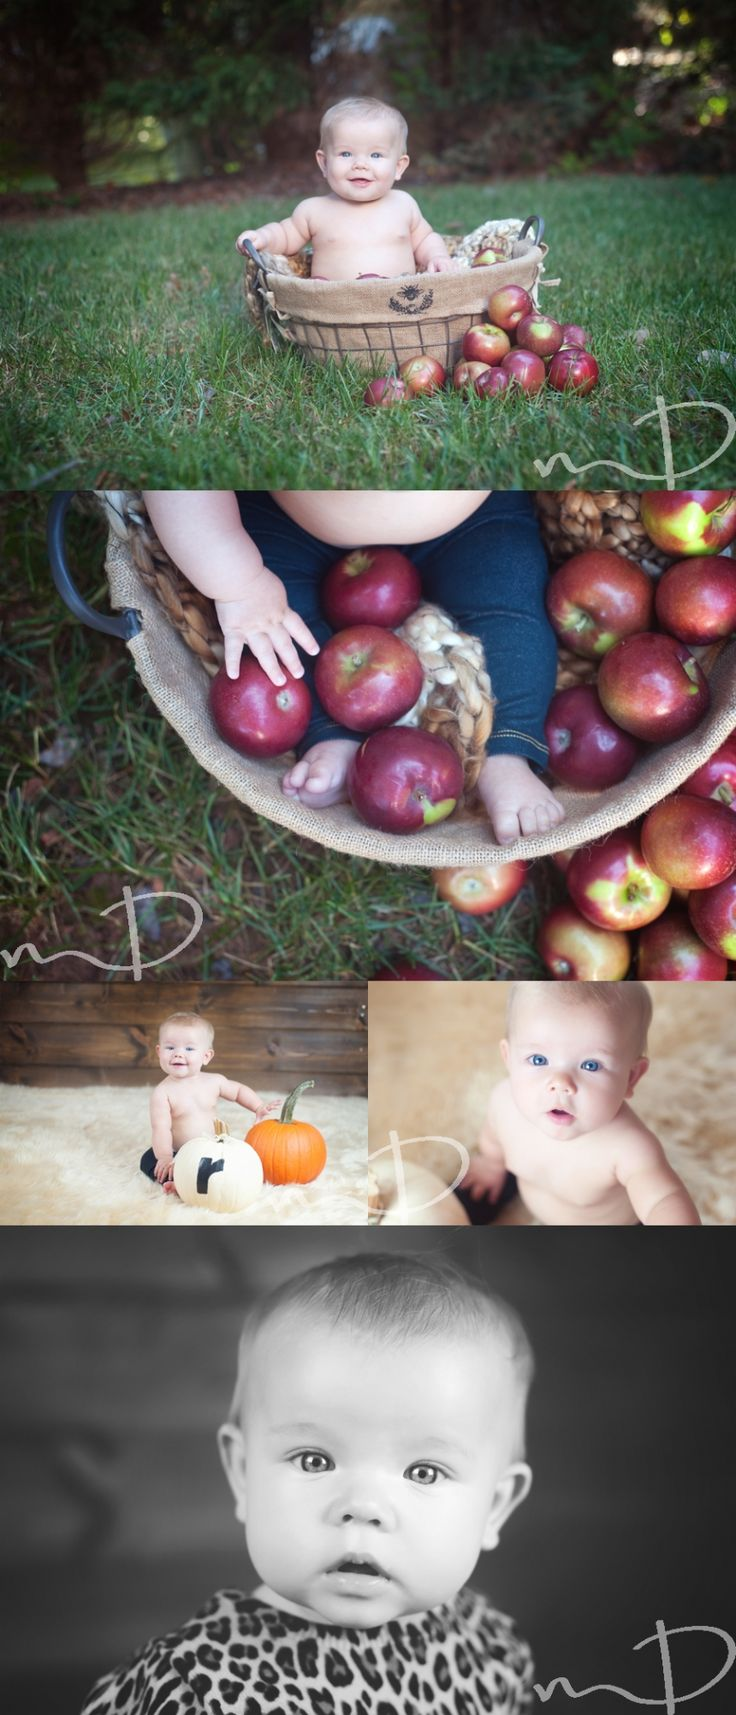 Six Month Old Baby Session - Asheville Baby Photographer | Asheville Maternity & Newborn Photographer - Molly Dockery Photography Blog - Fall Baby Session